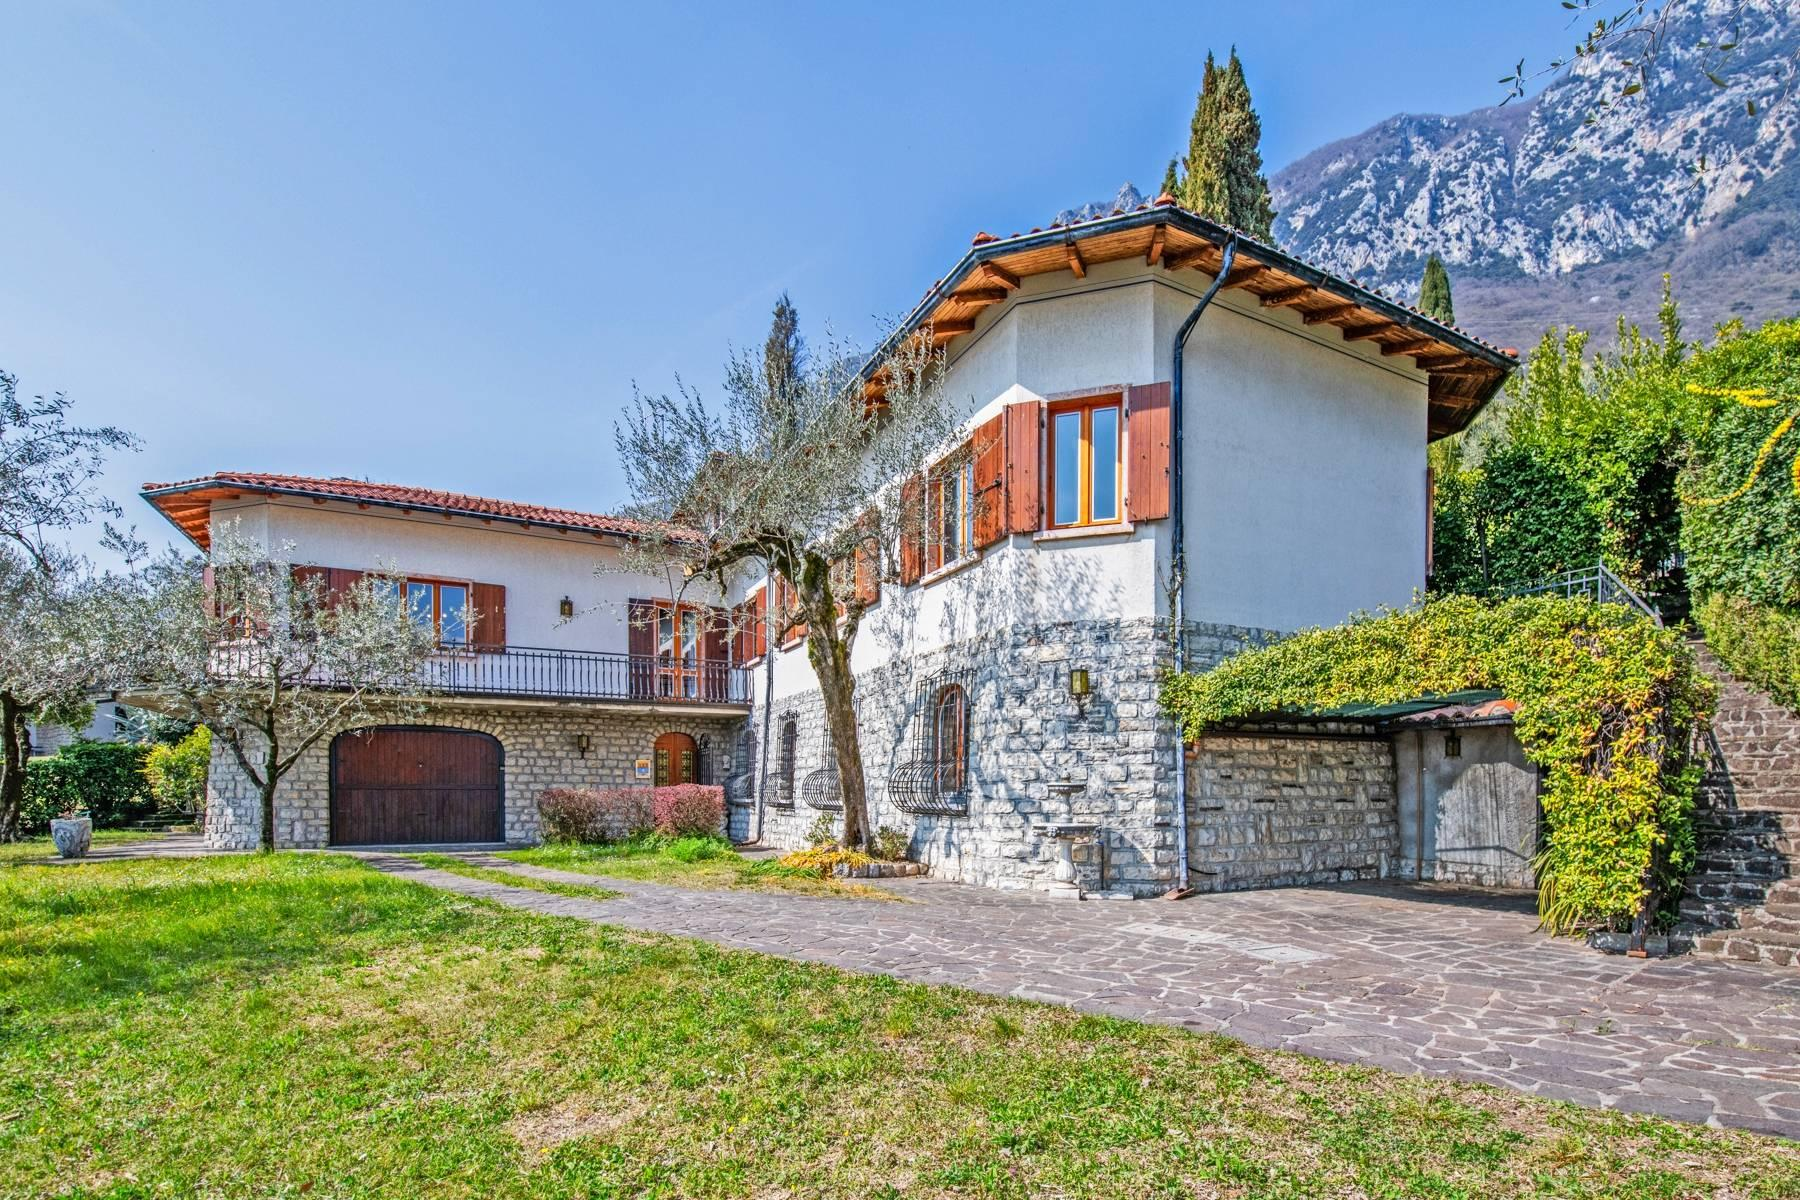 Villa with lake view in Gargnano surrounded by olive trees - 13